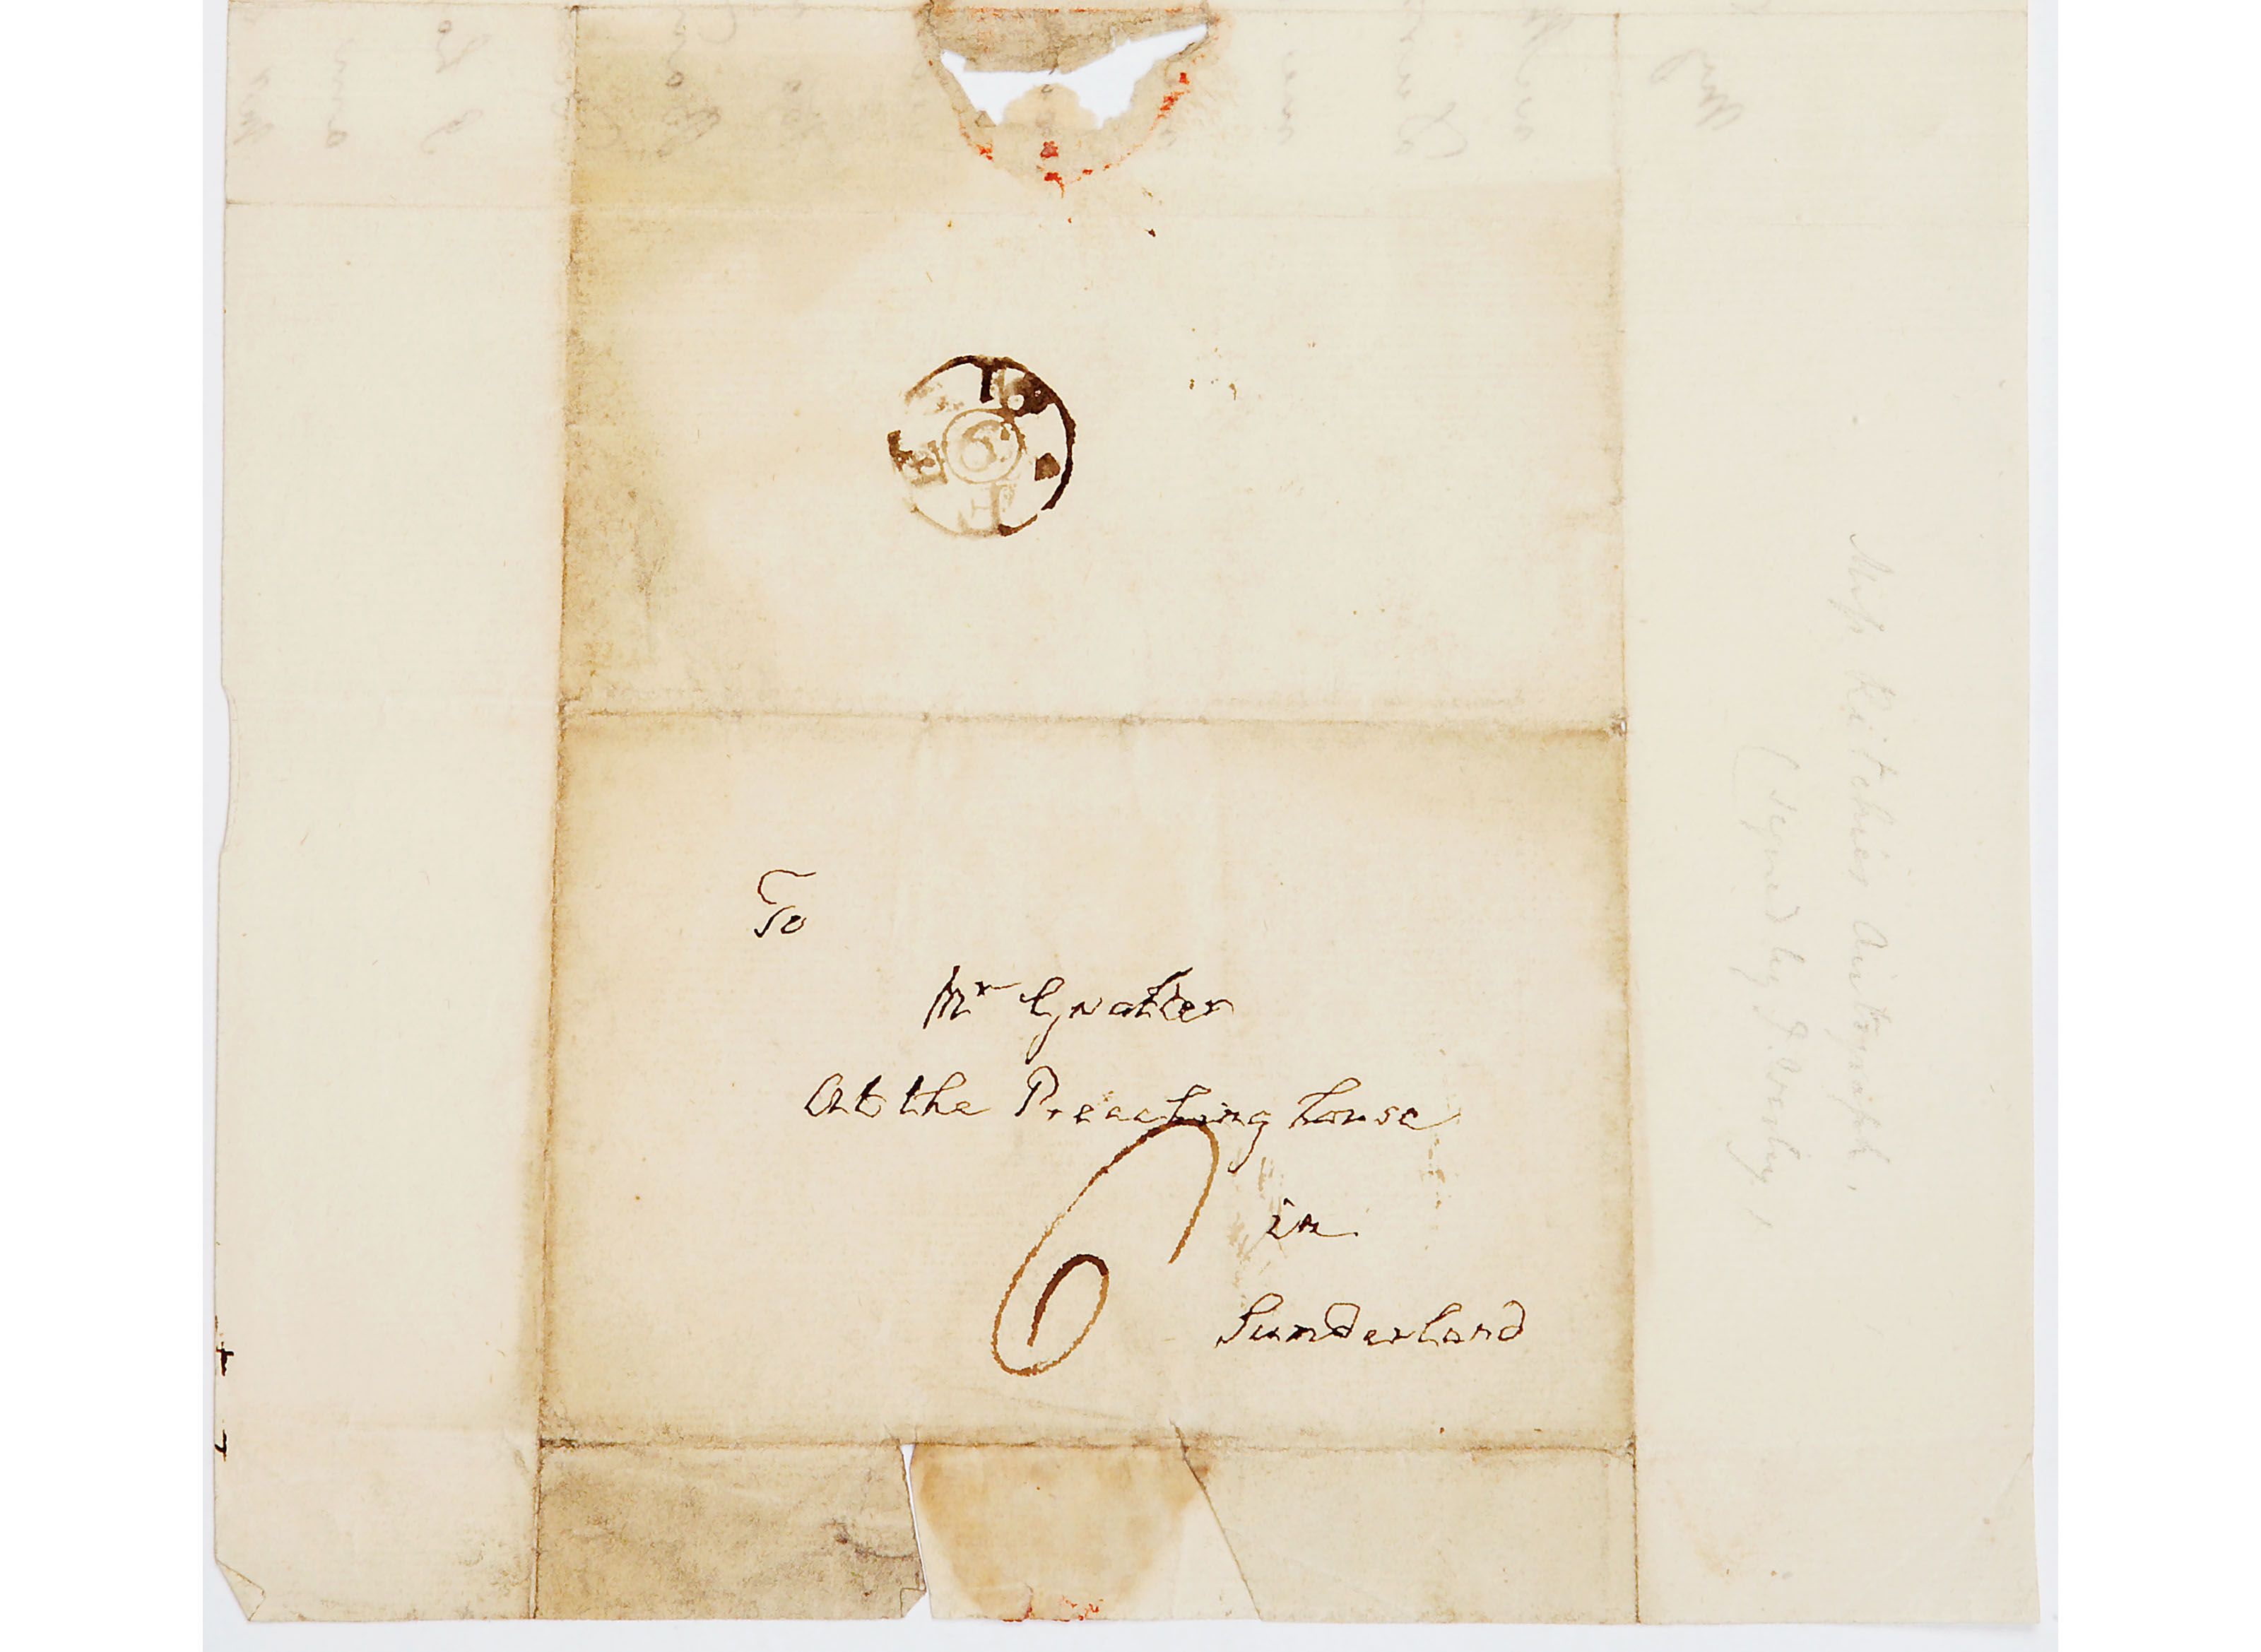 Letter from John Wesley to Mr Gaulter (Dodsworth Bequest)